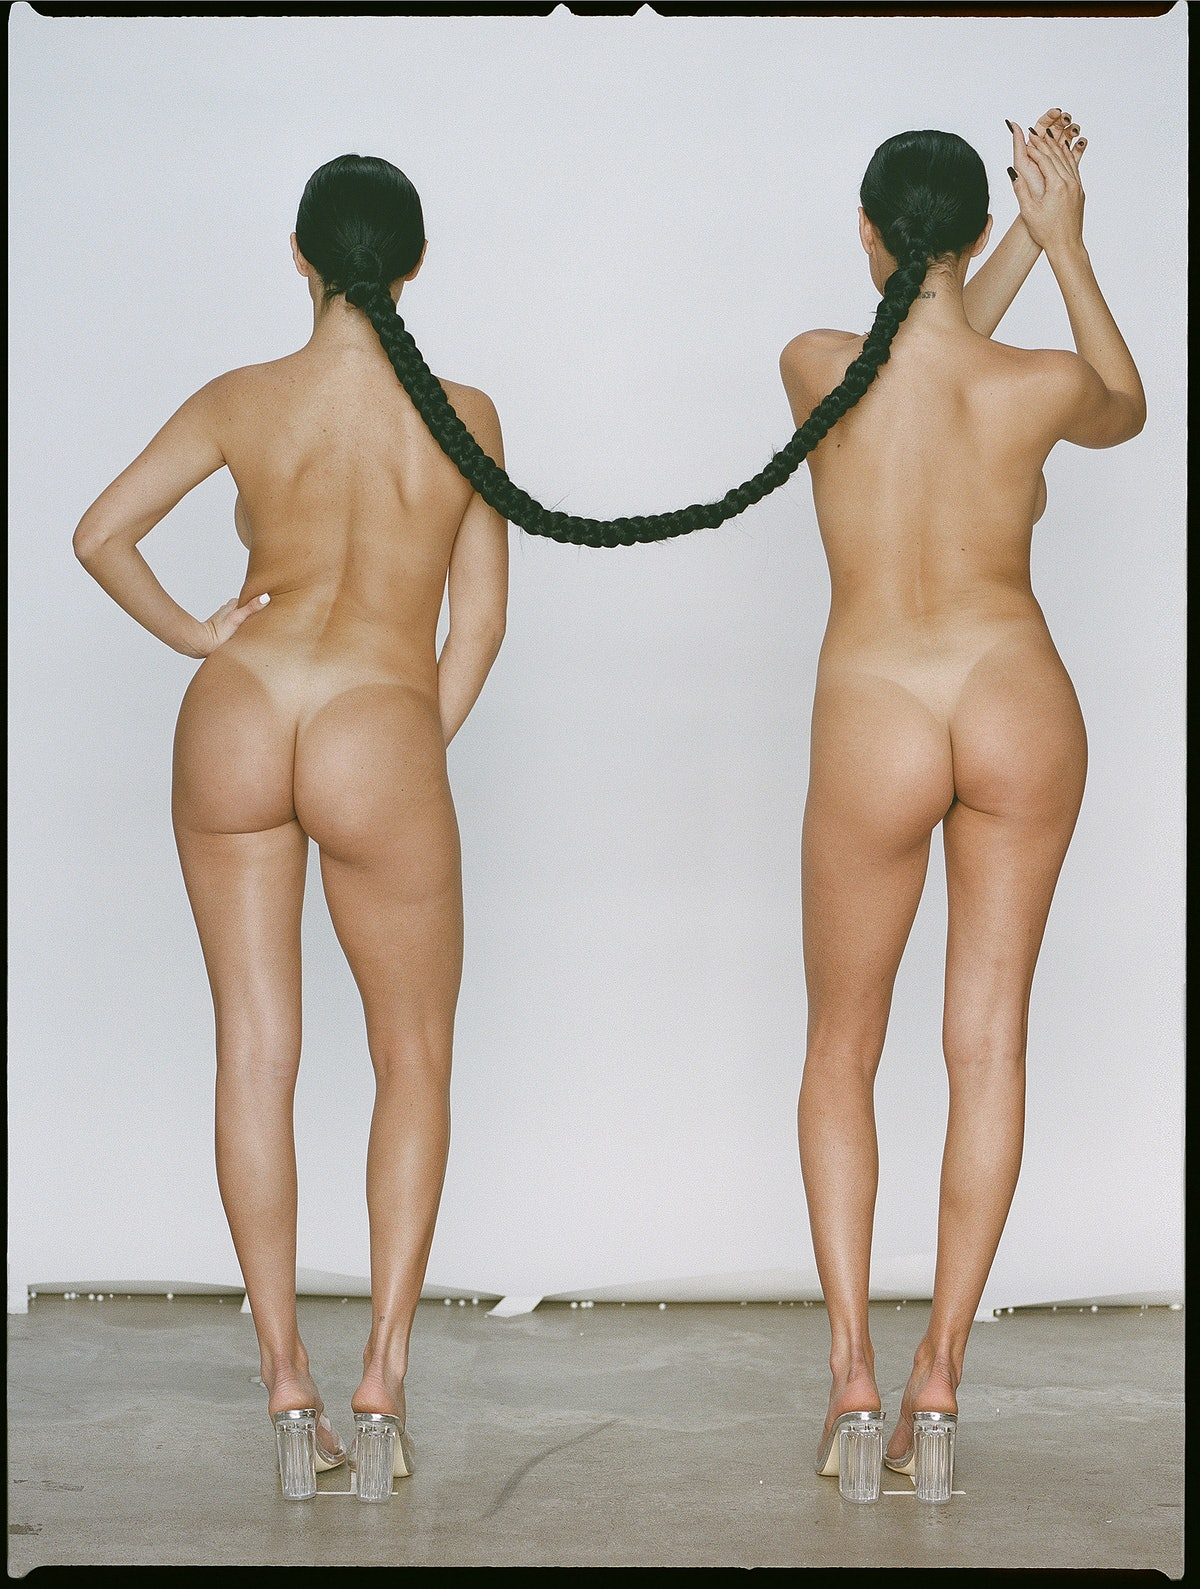 Two women with a shared braid